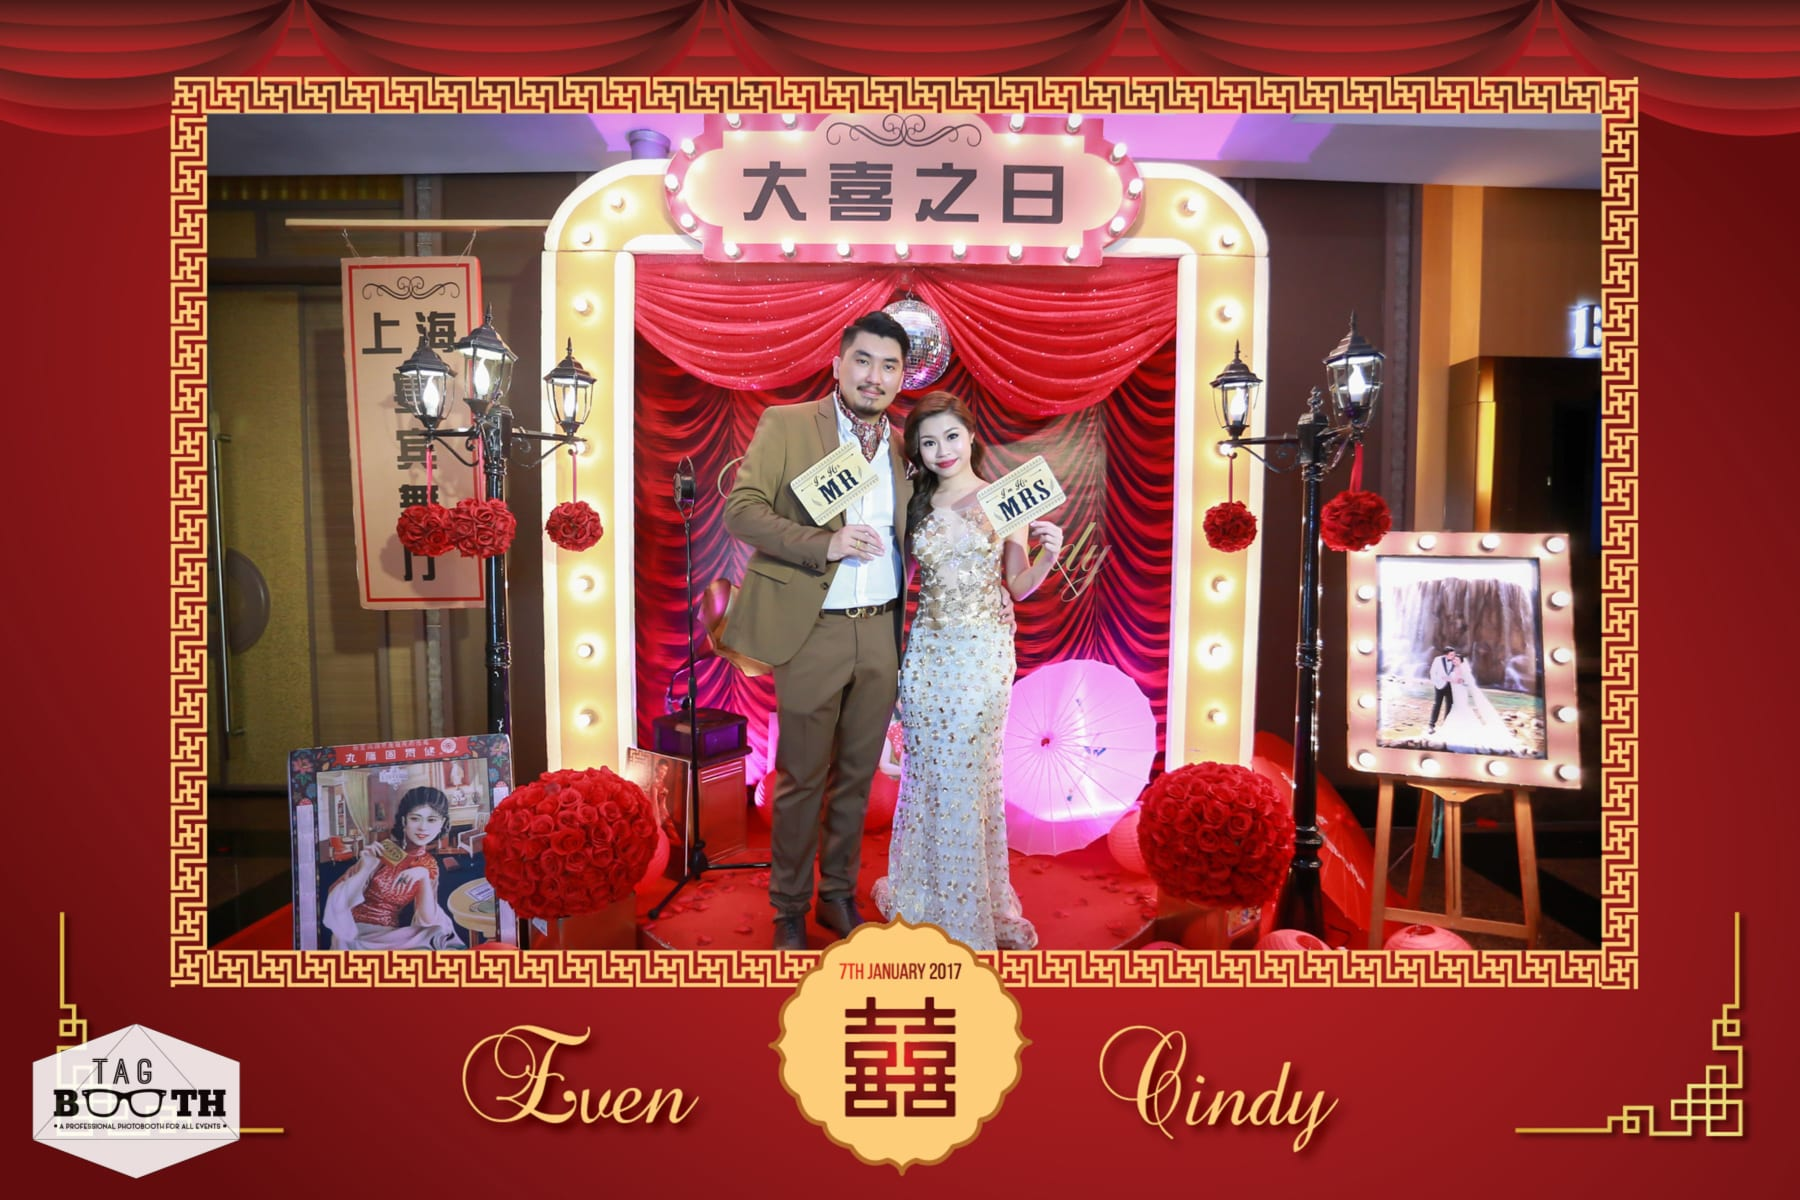 Oriental themed wedding photobooth